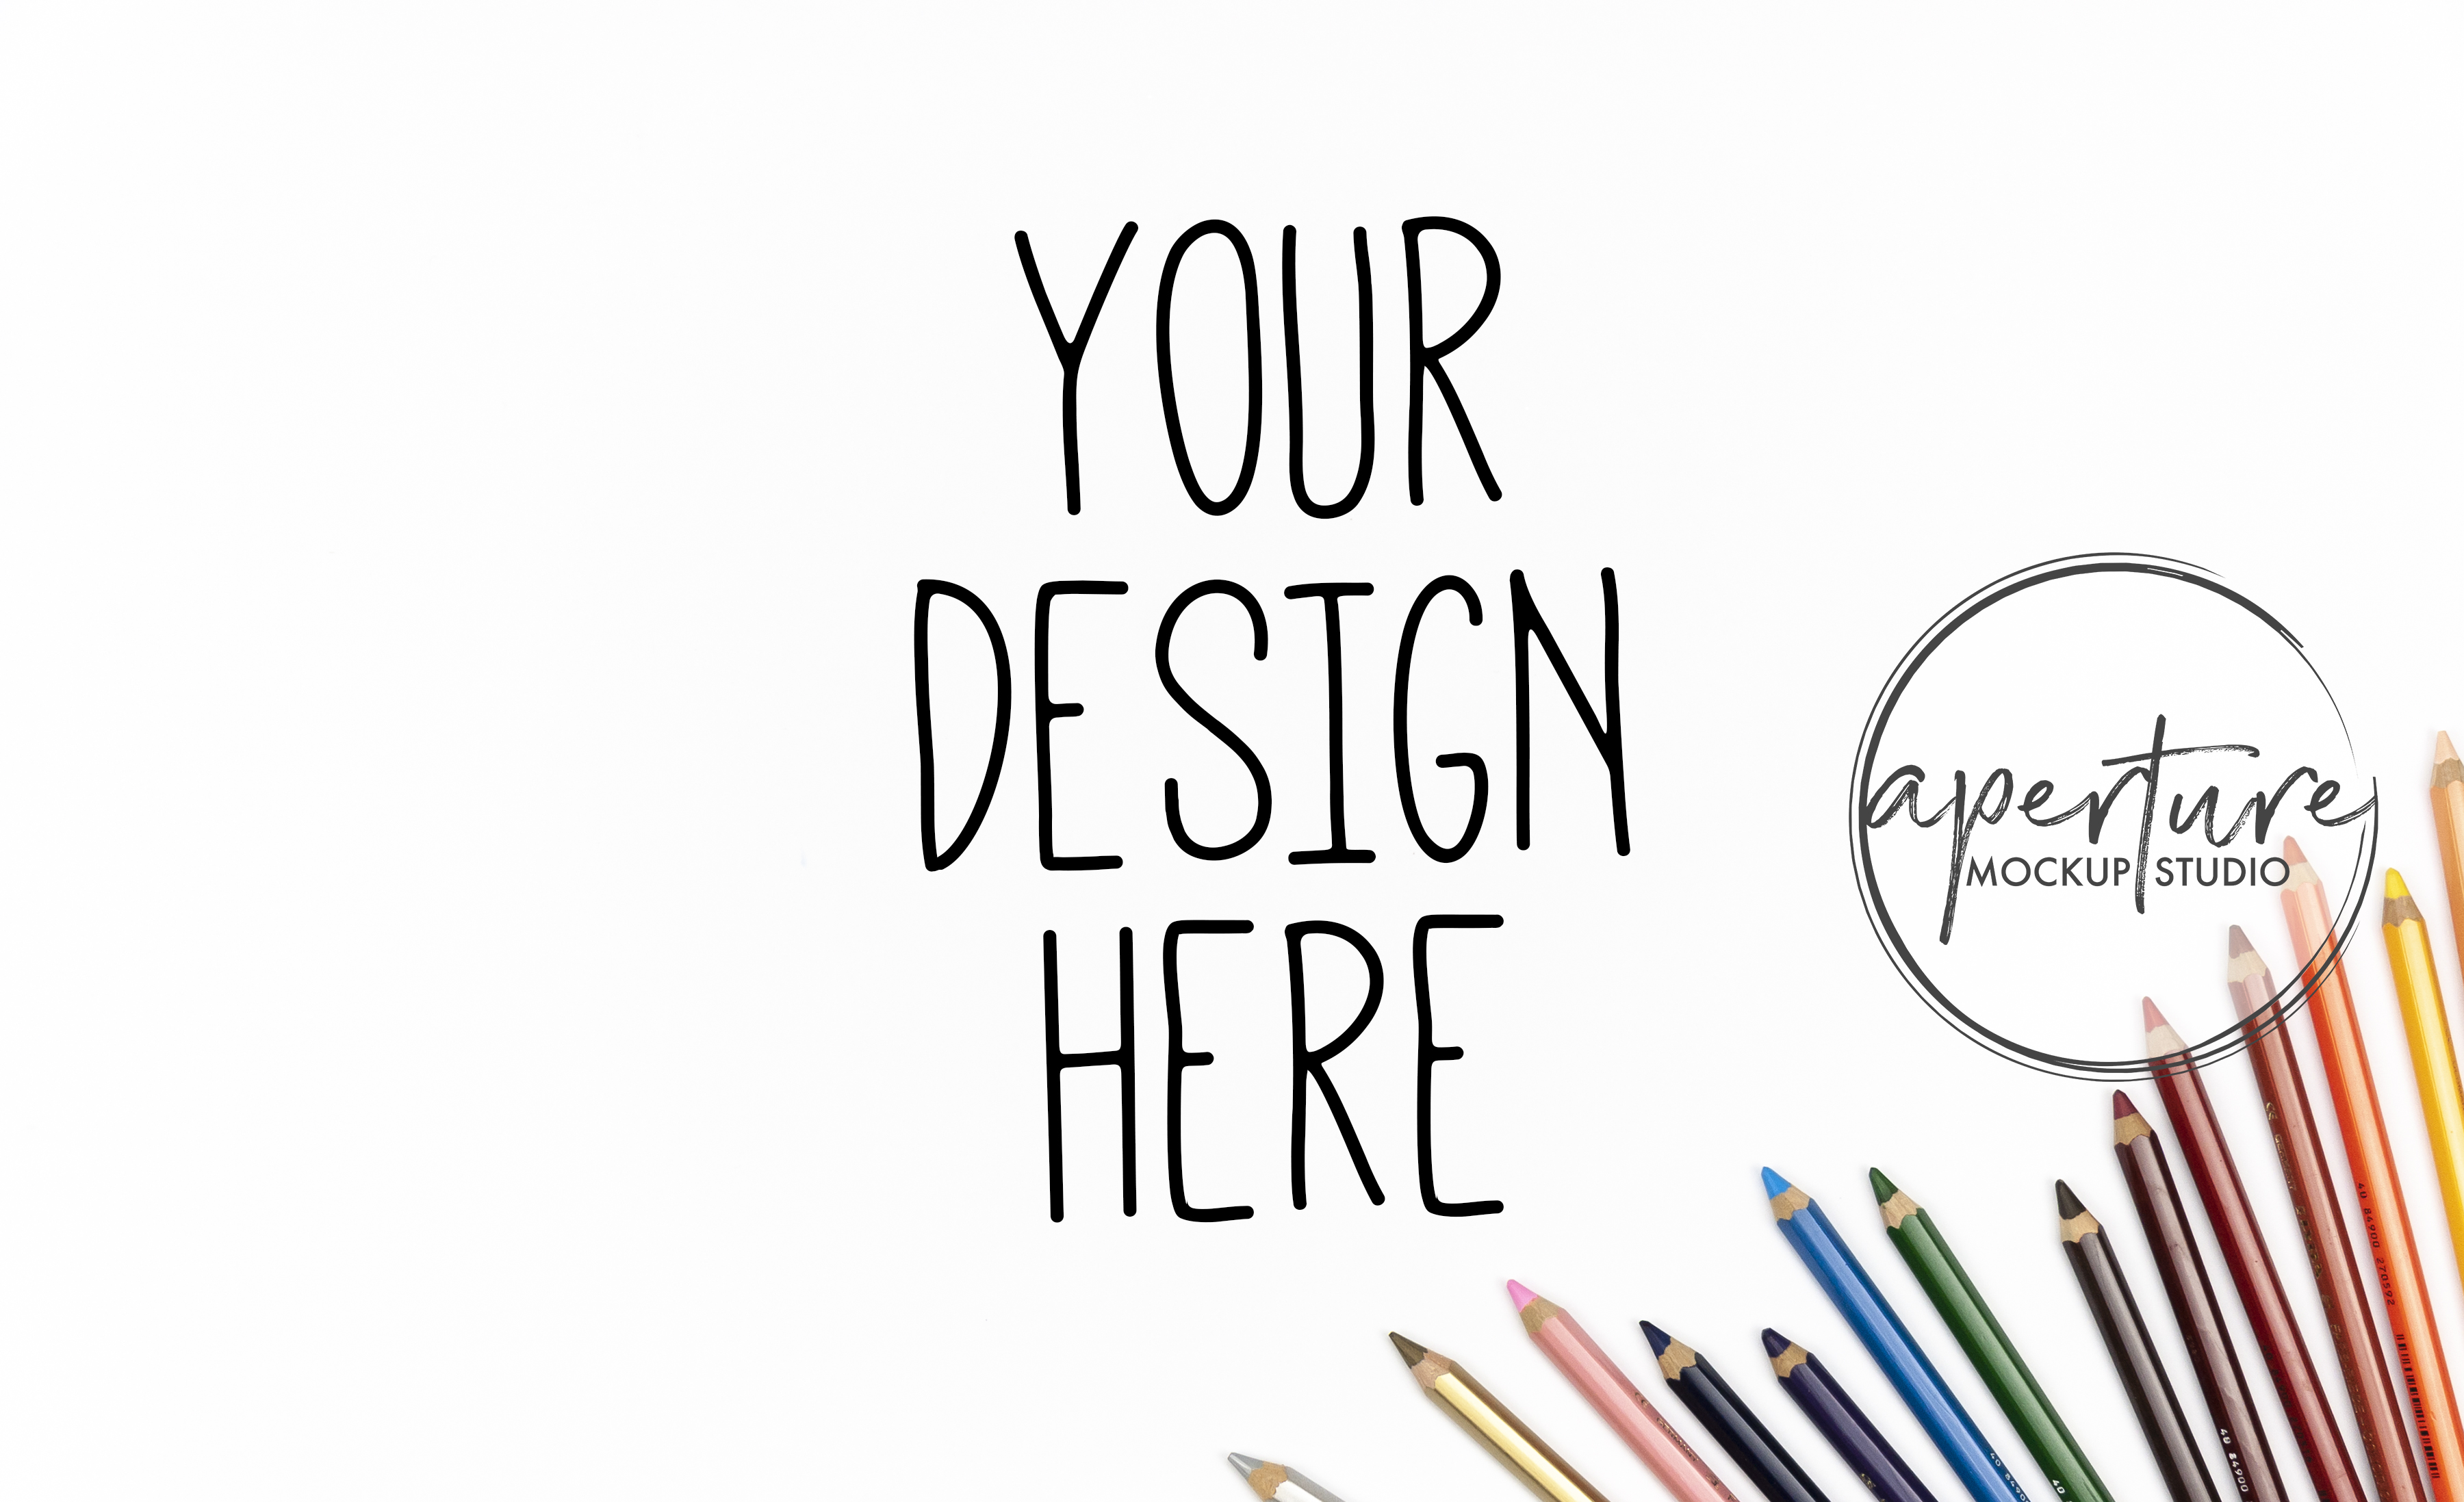 Download Free Coloring Pages Mockup Photo Graphic By Aperture Mockup And for Cricut Explore, Silhouette and other cutting machines.